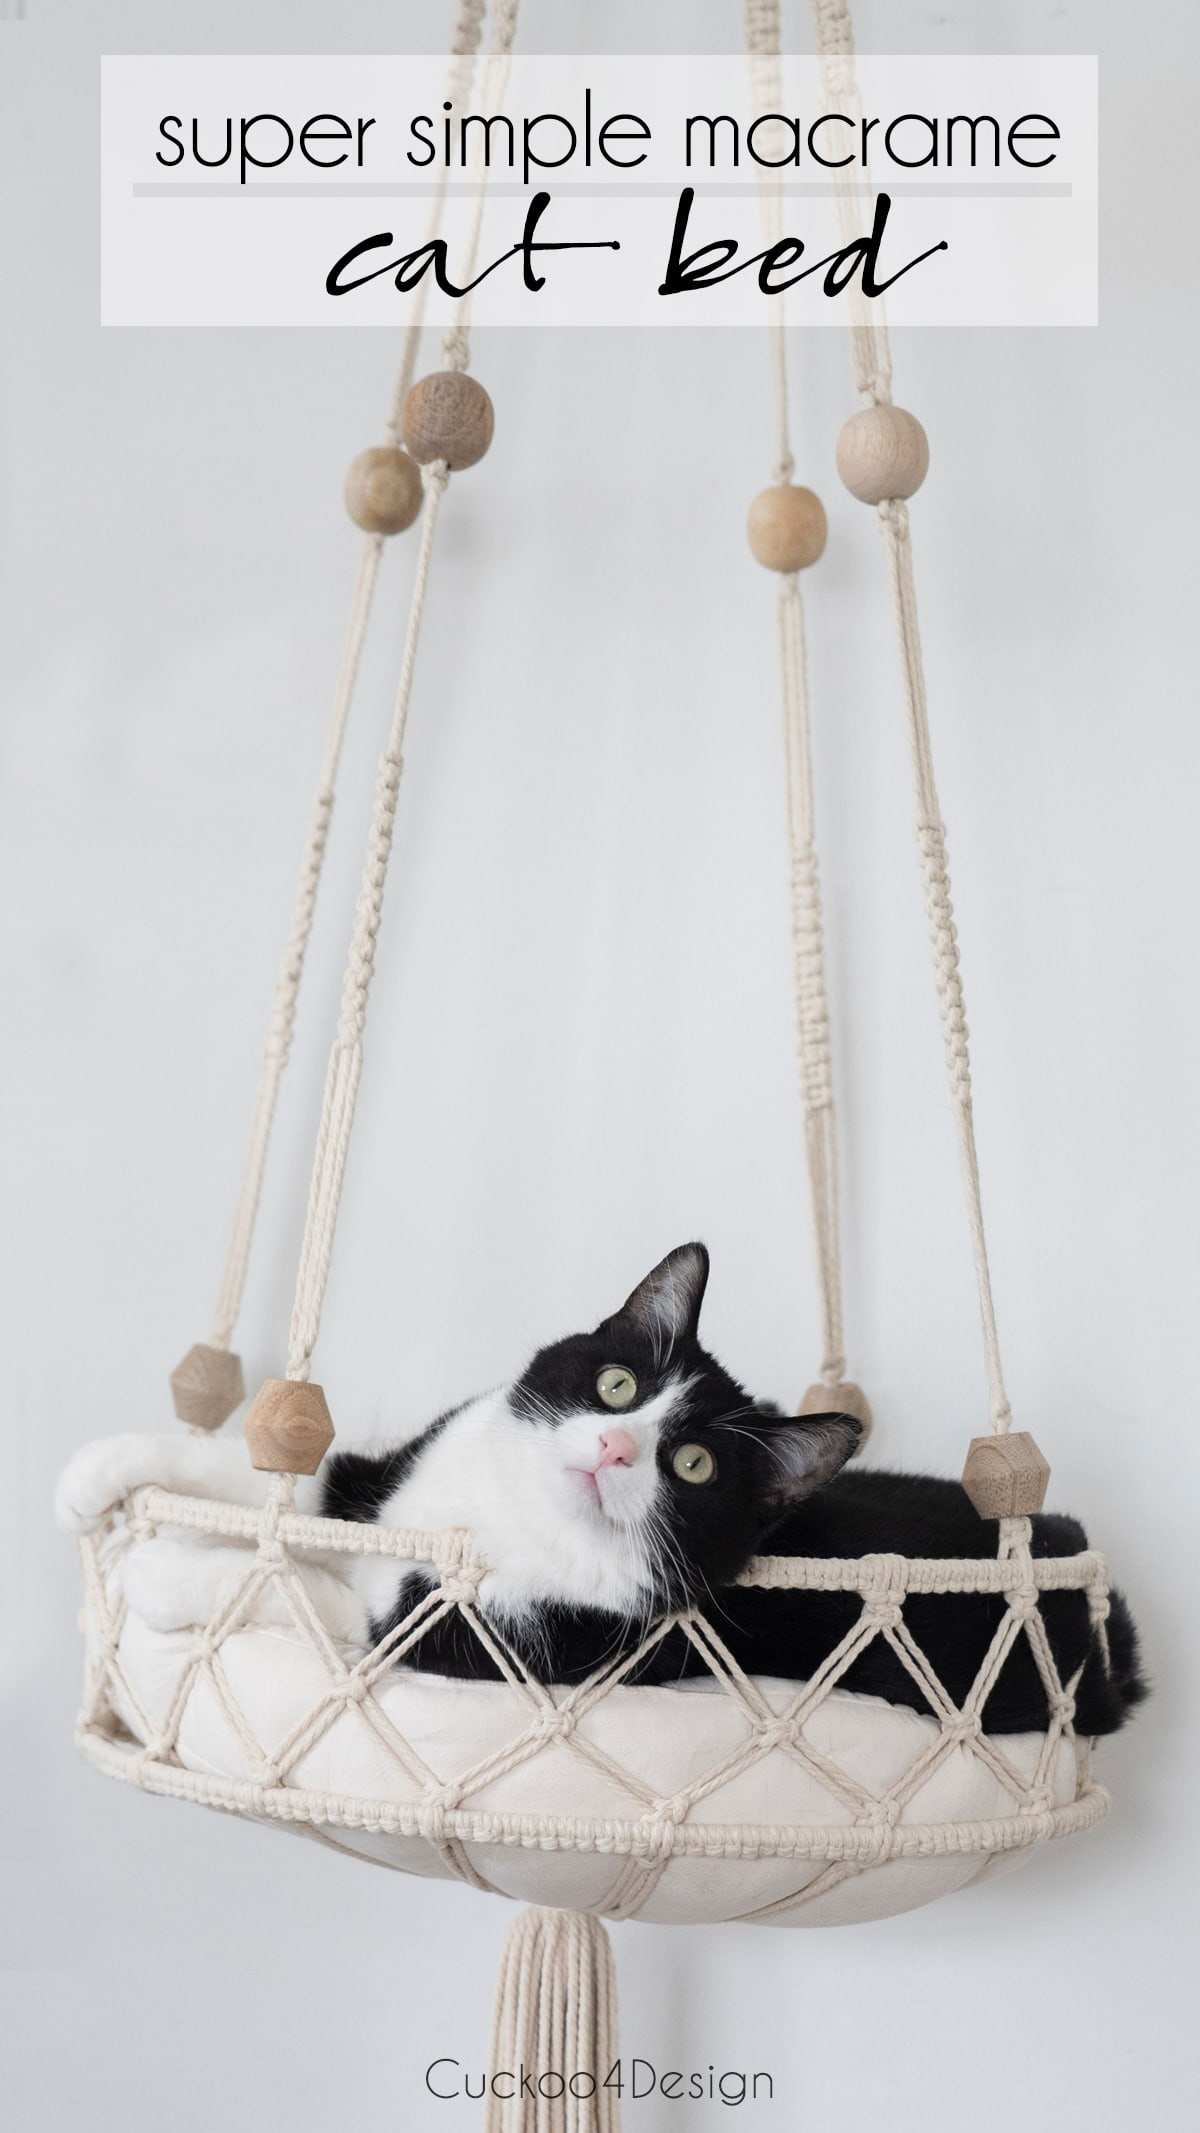 how to make a hanging macrame DIY cat bed